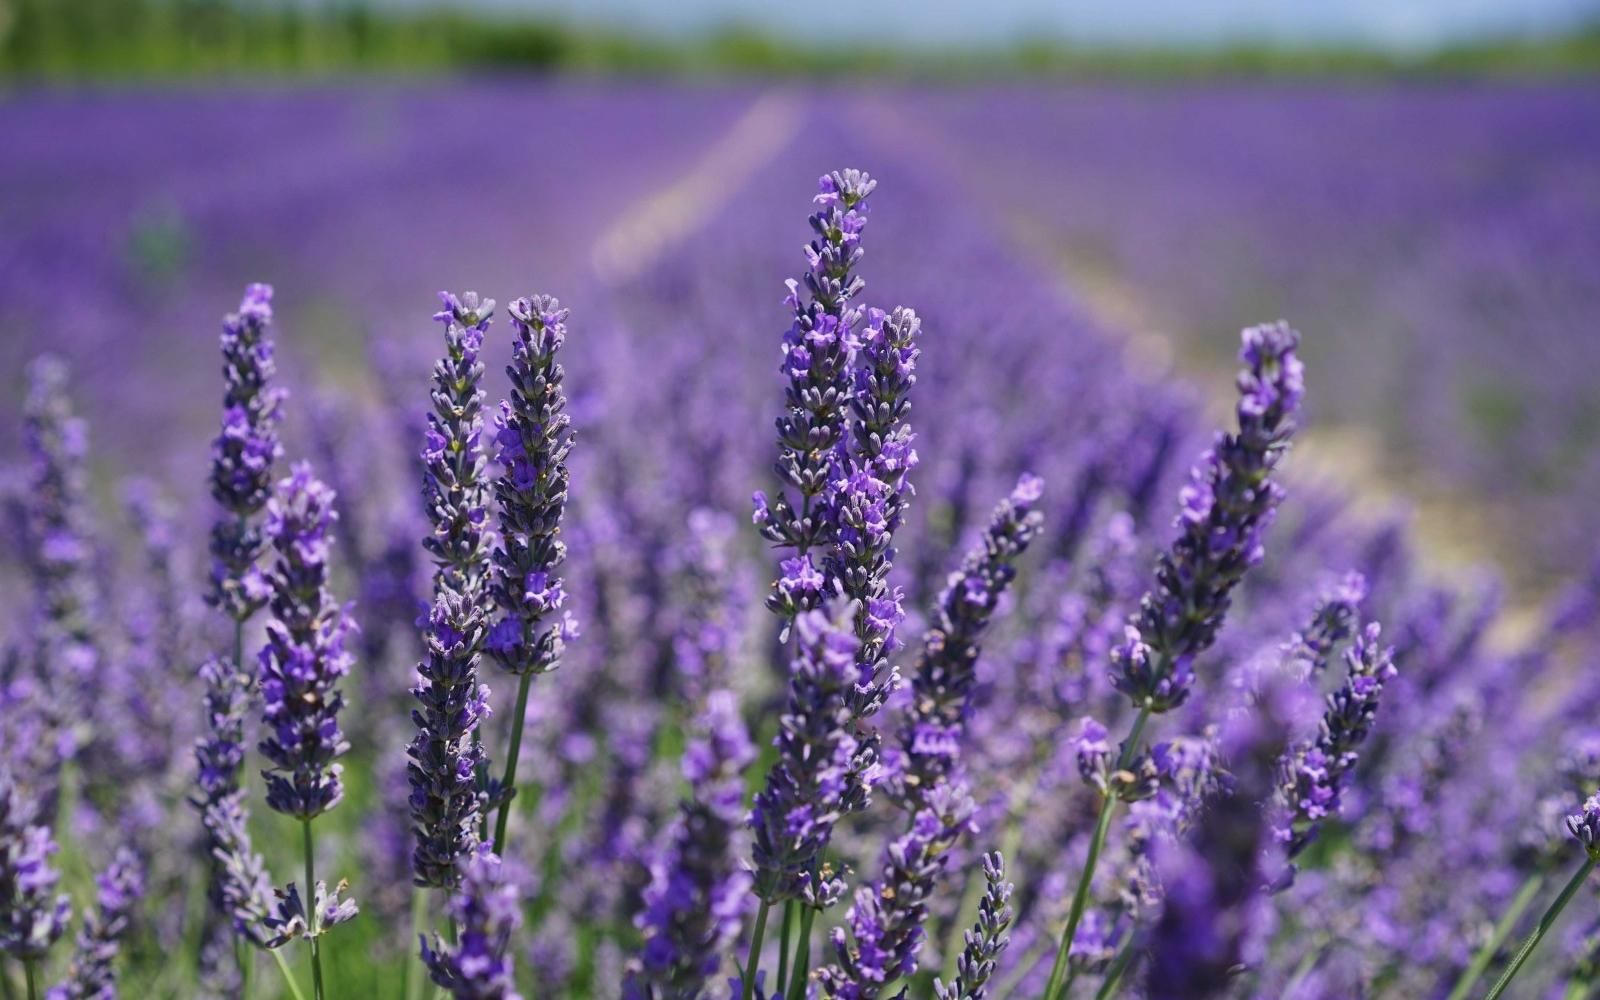 Lavender isn't widely used in Gin (yet), but there are a couple of recent releases which hero this delicate, floral flavour.